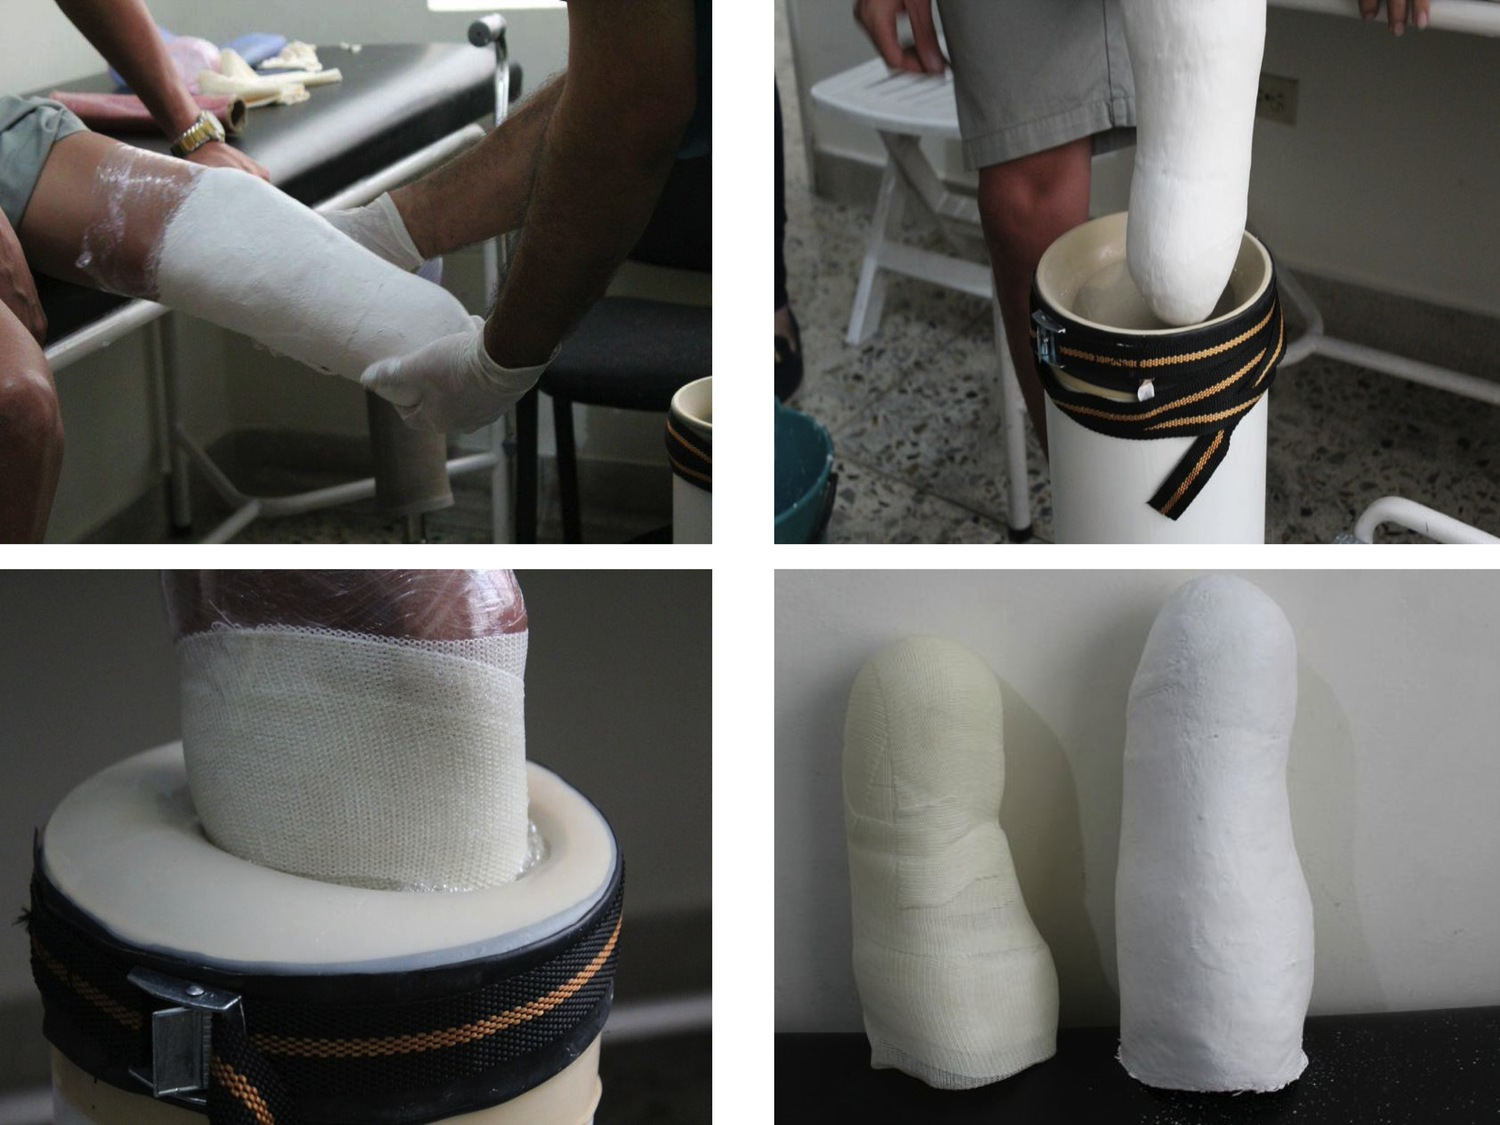 Majicast captures the unique shape of lower residual limbs with the use of plaster bandages or other direct casting material